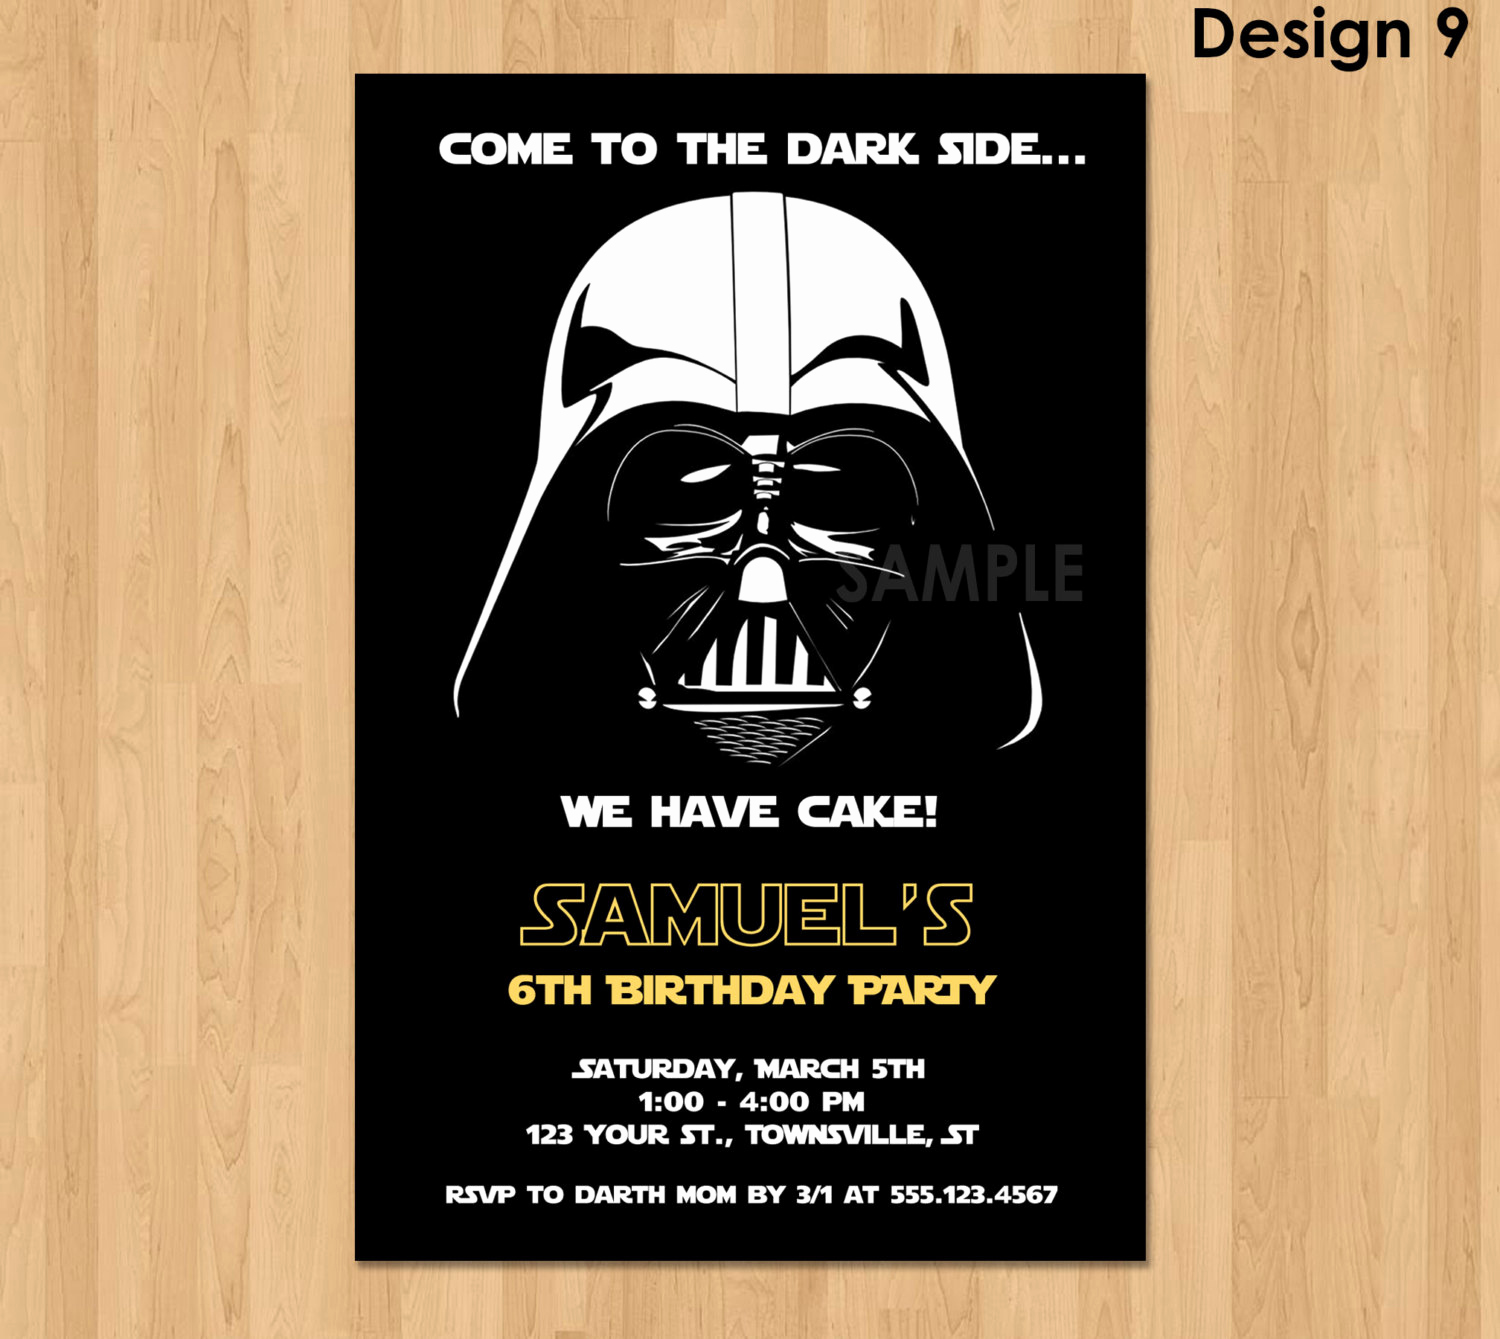 Star Wars Invitation Wording Luxury Darth Vader Invitation Star Wars Birthday Invitation Star